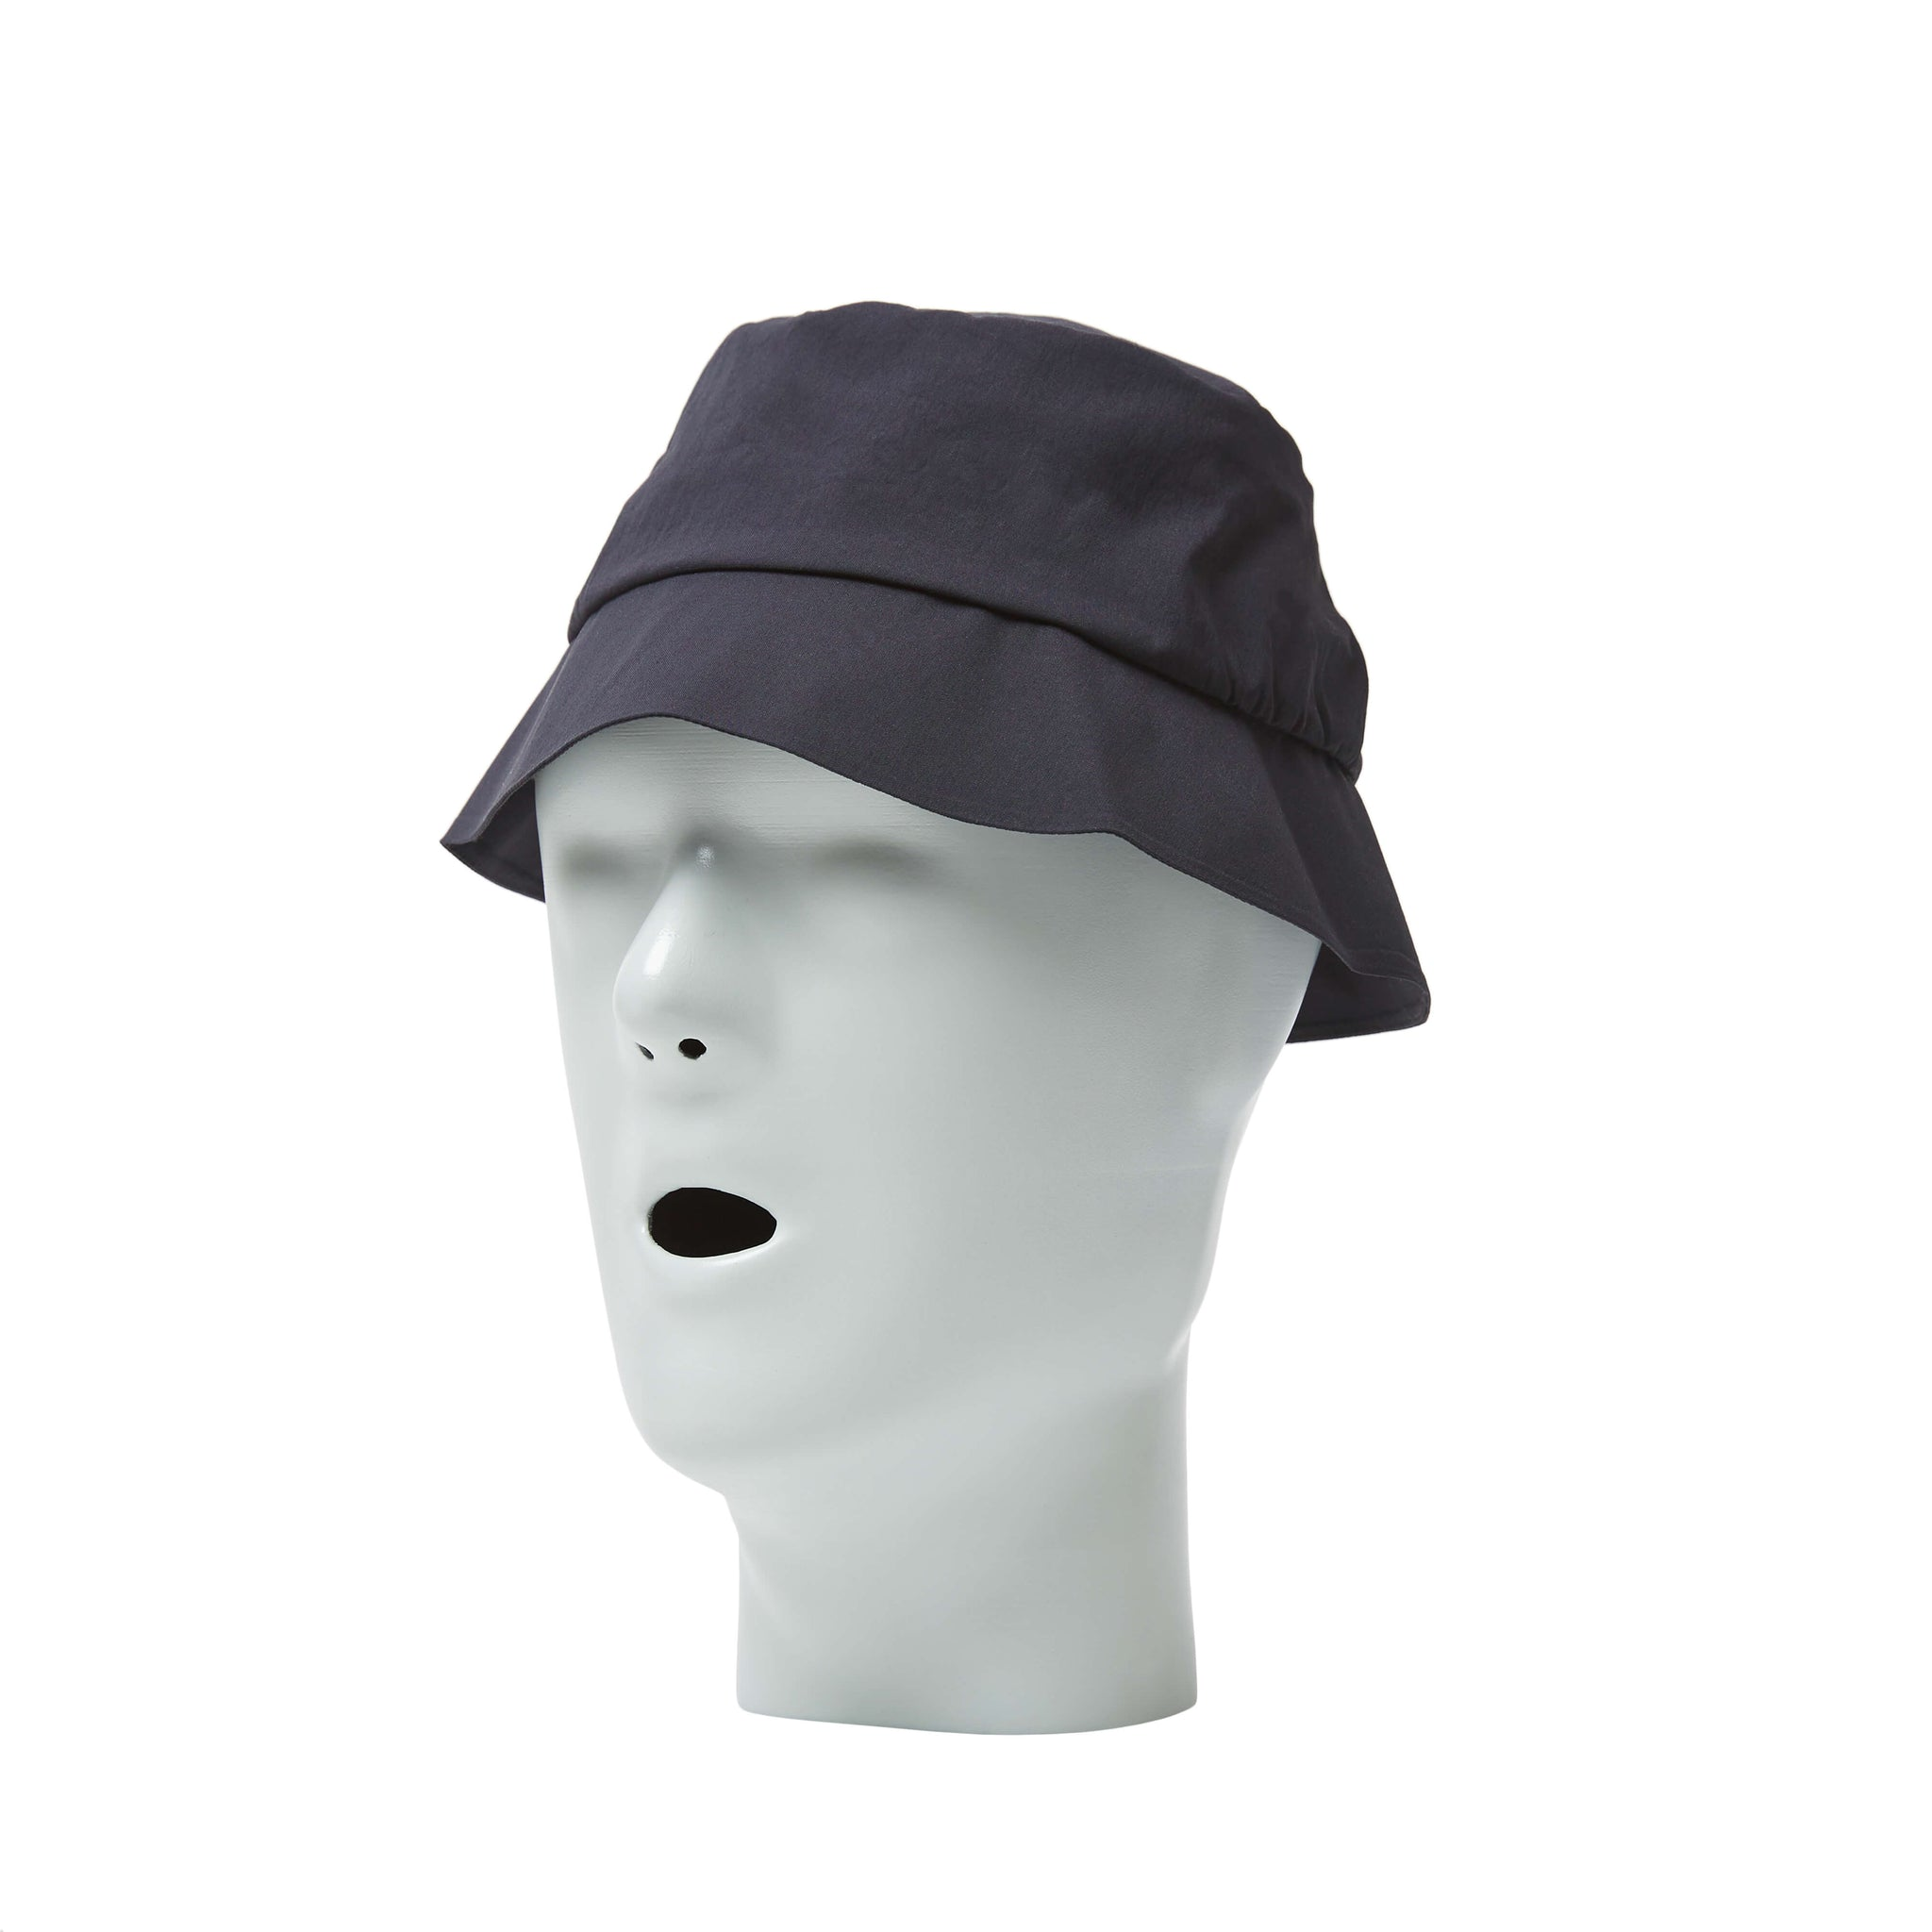 AFFIX WORKS AFFX WRKS STOW BUCKET HAT BLACK